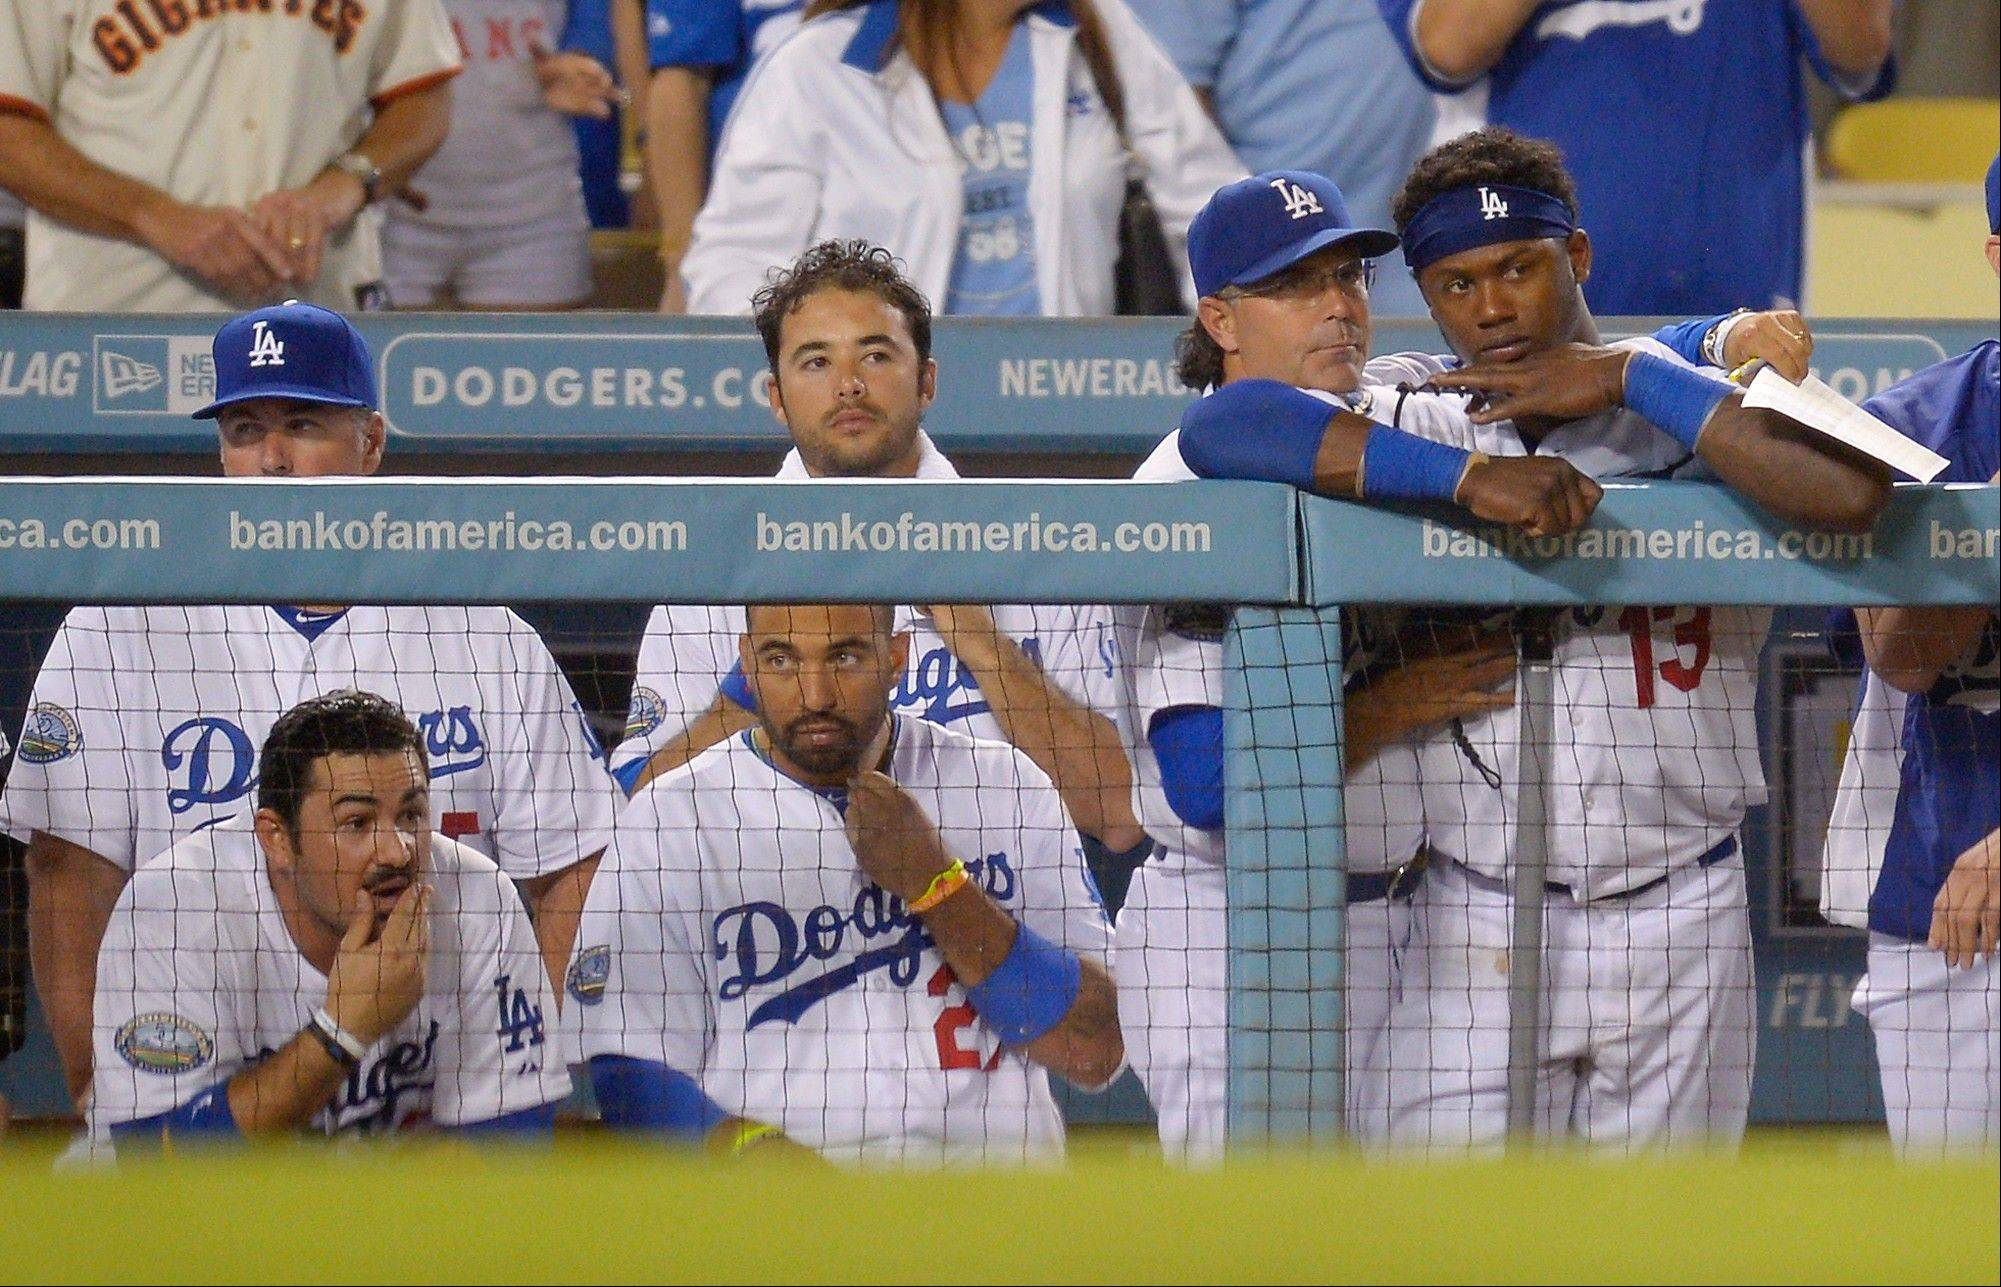 Members of the Dodgers watch from the dugout during the ninth inning Tuesday against the San Francisco Giants. The Giants won the game 4-3 in Los Angeles.